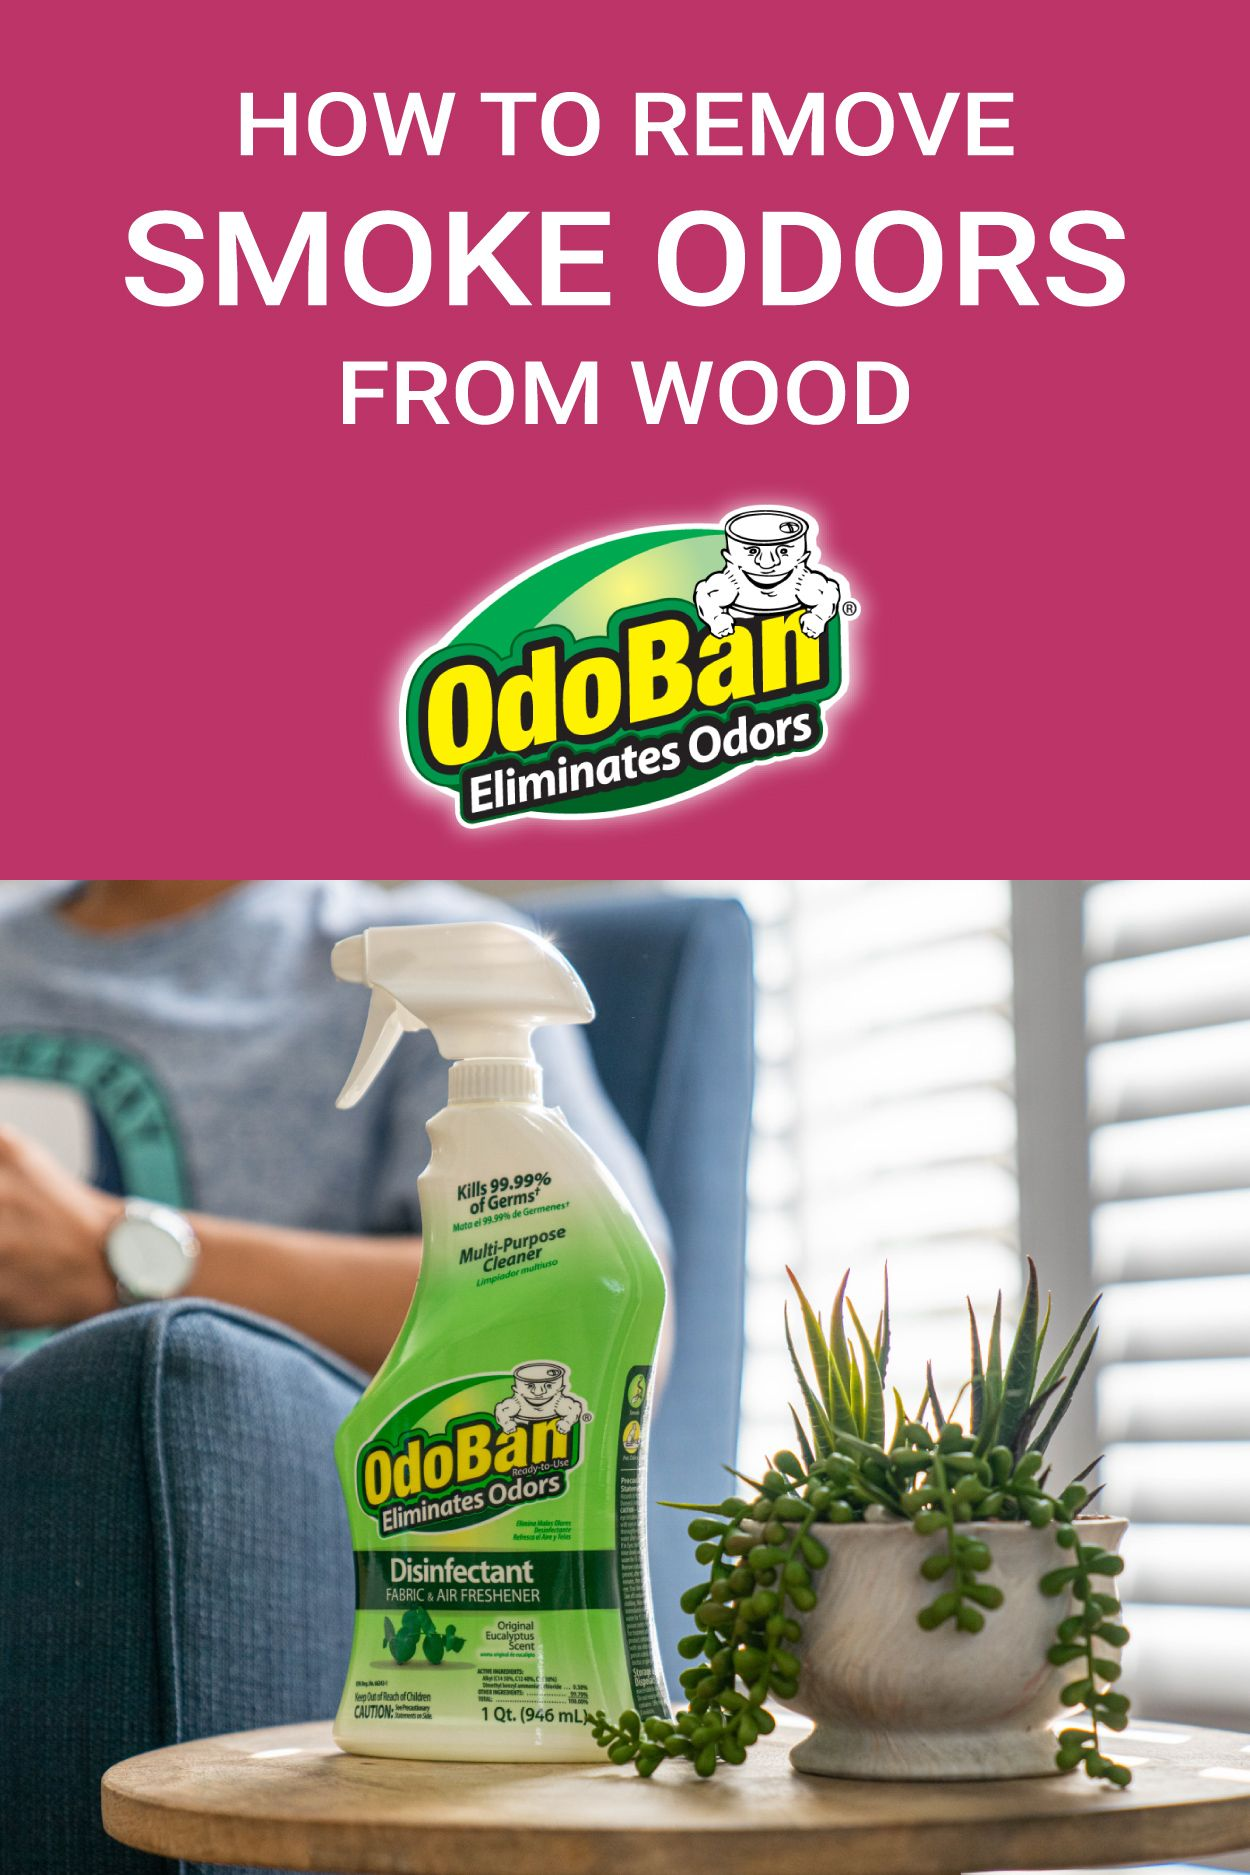 How To Get Smoke Odors Out Of Wood Furniture In 2020 Smoke Smell Wood Furniture Odor Eliminator